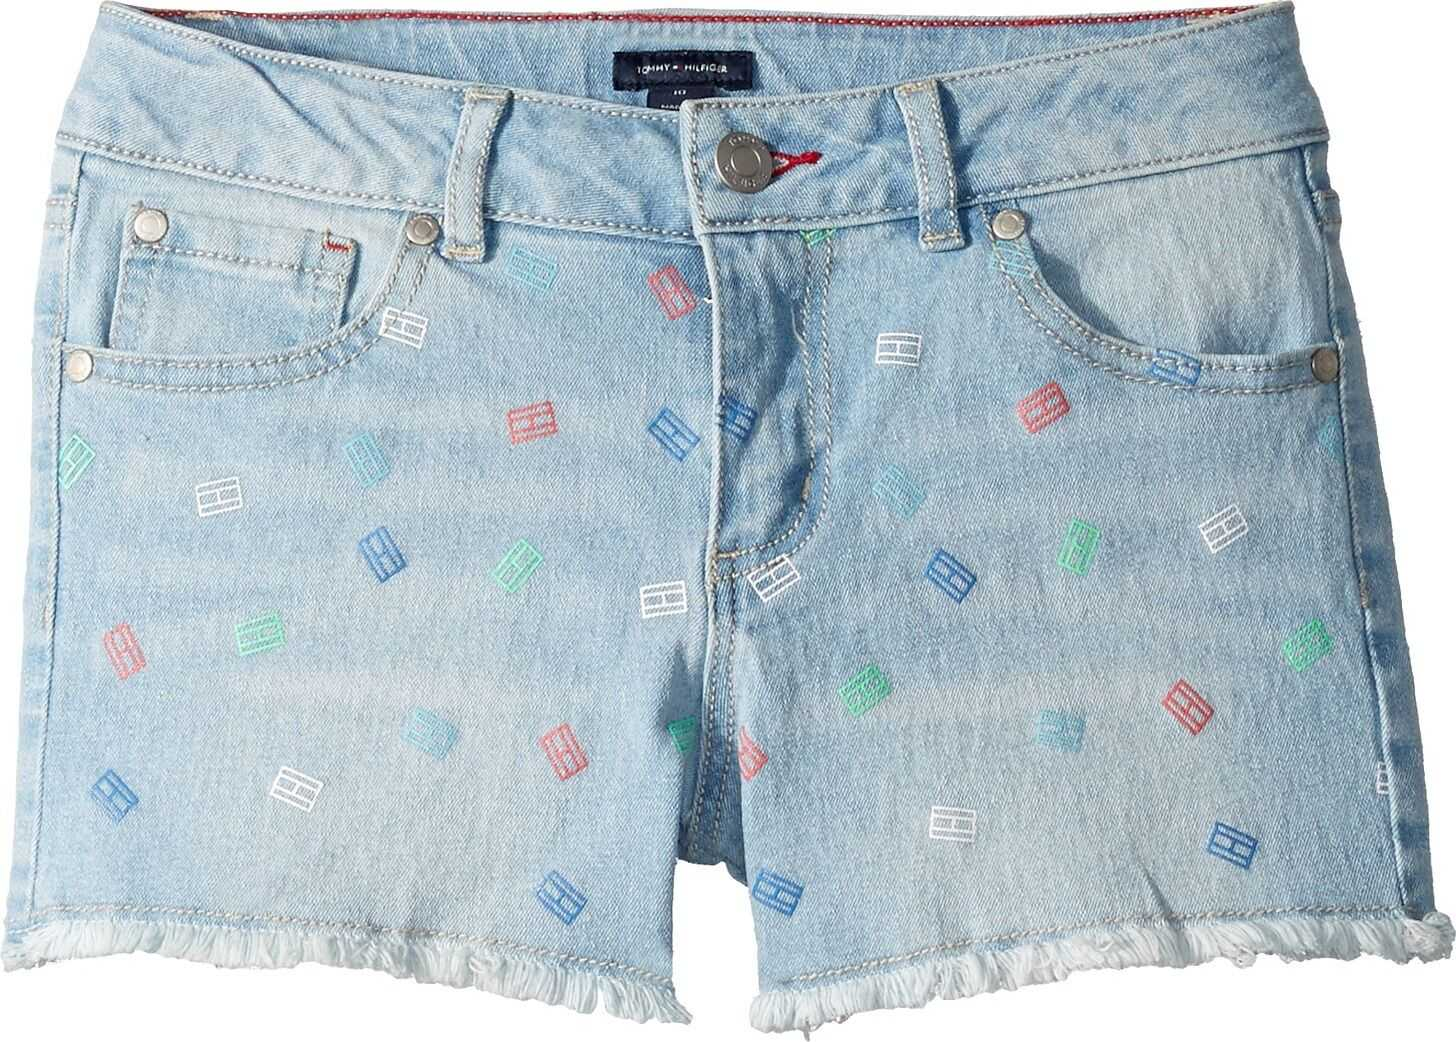 Denim Shorts with Panel Print in Bowery Blue (Little Kids/Big Kids)